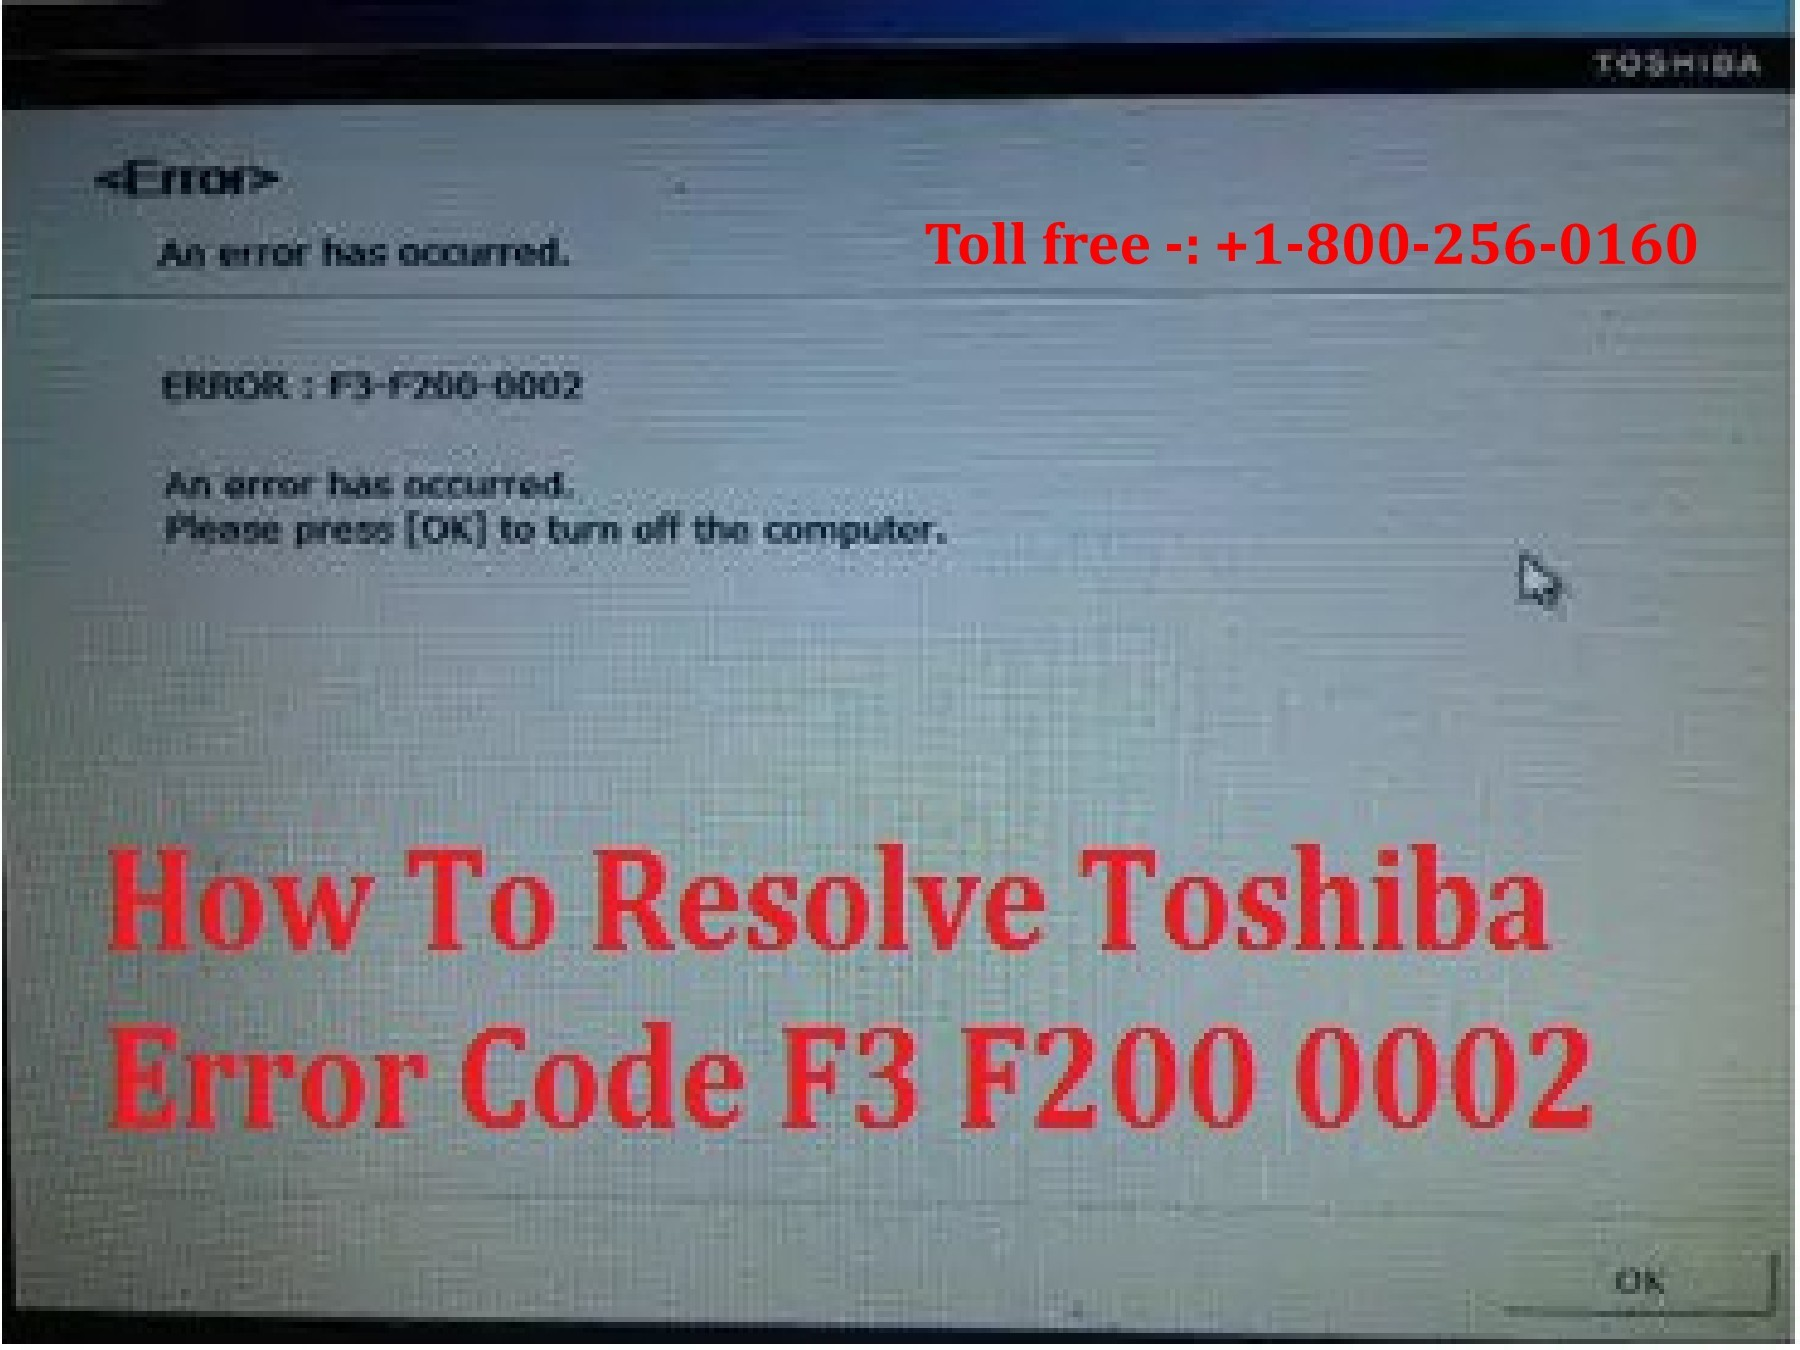 1(800) 256 0160 Resolve Toshiba Error Code f3 f200 0002? | PubHTML5